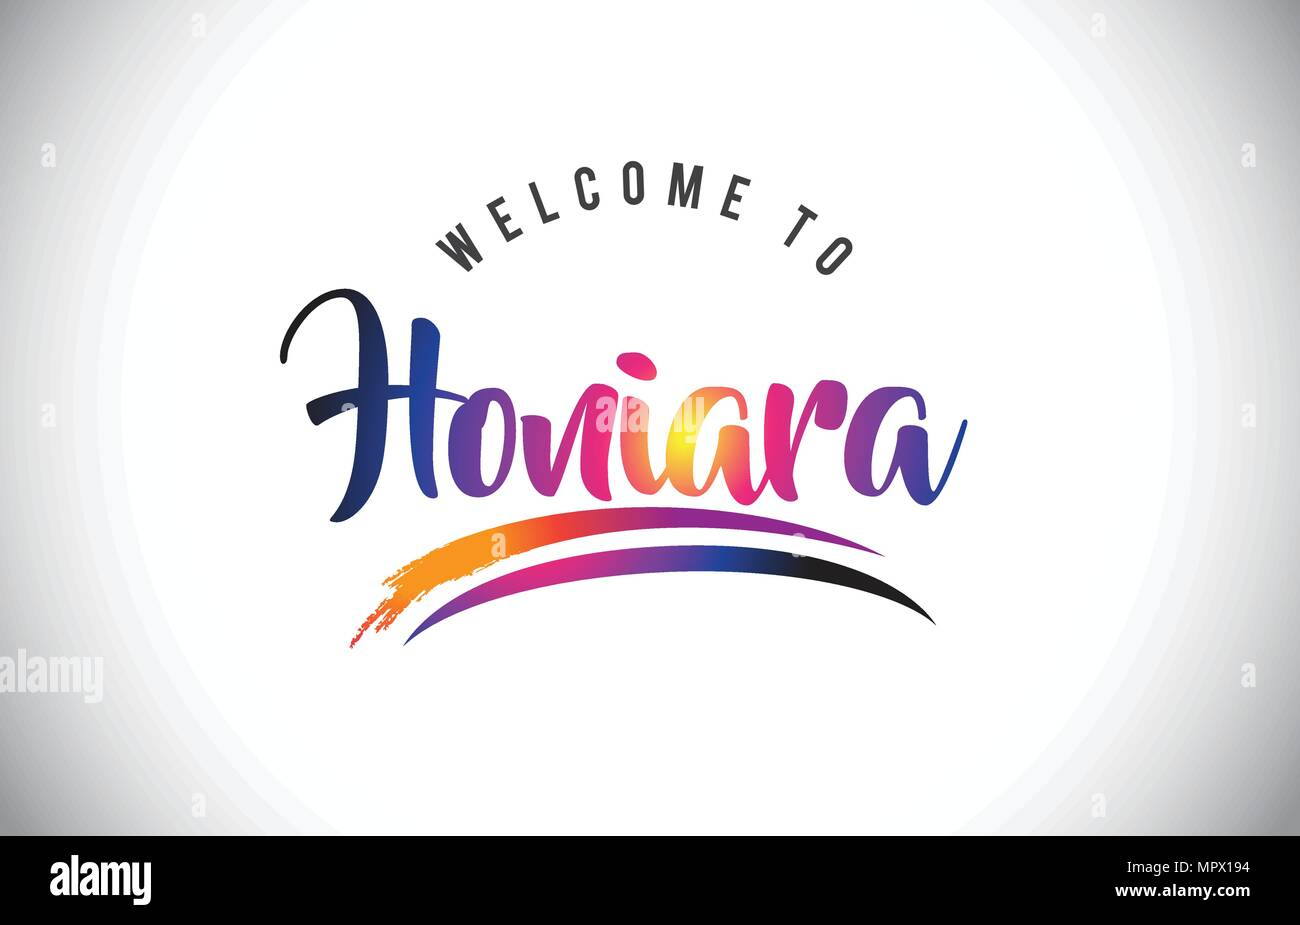 Honiara Welcome To Message in Purple Vibrant Modern Colors Vector Illustration. - Stock Image